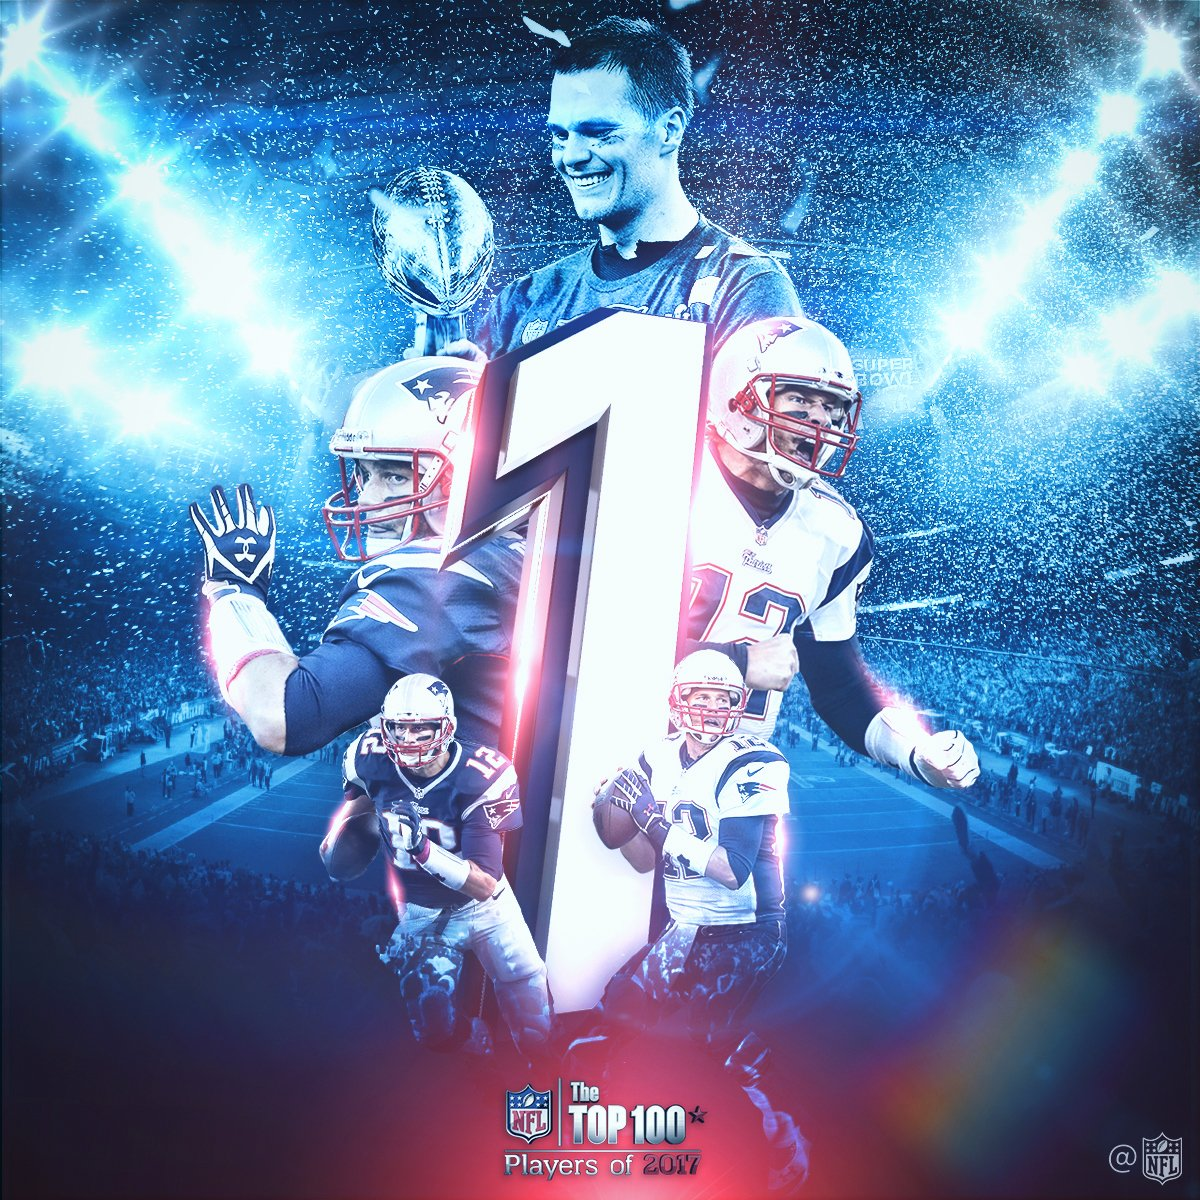 Tom Brady is No. 1 on the #NFLTop100 Players of 2017! https://t.co/hAV...